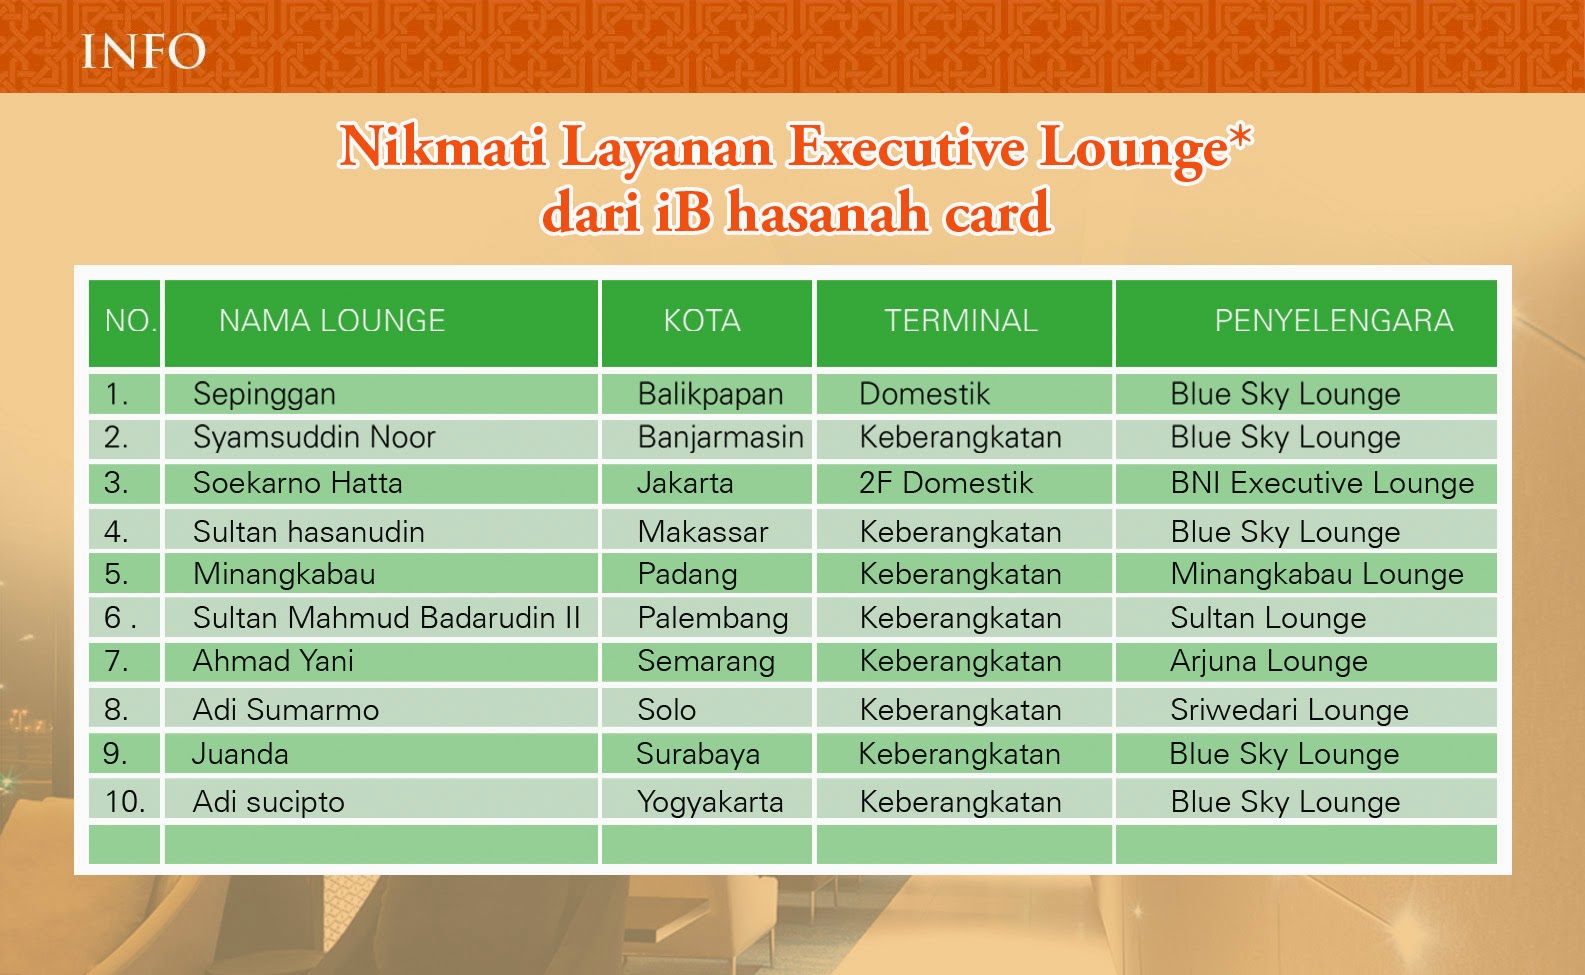 Informasi layanan Executive Lounge dari iB hasanah card